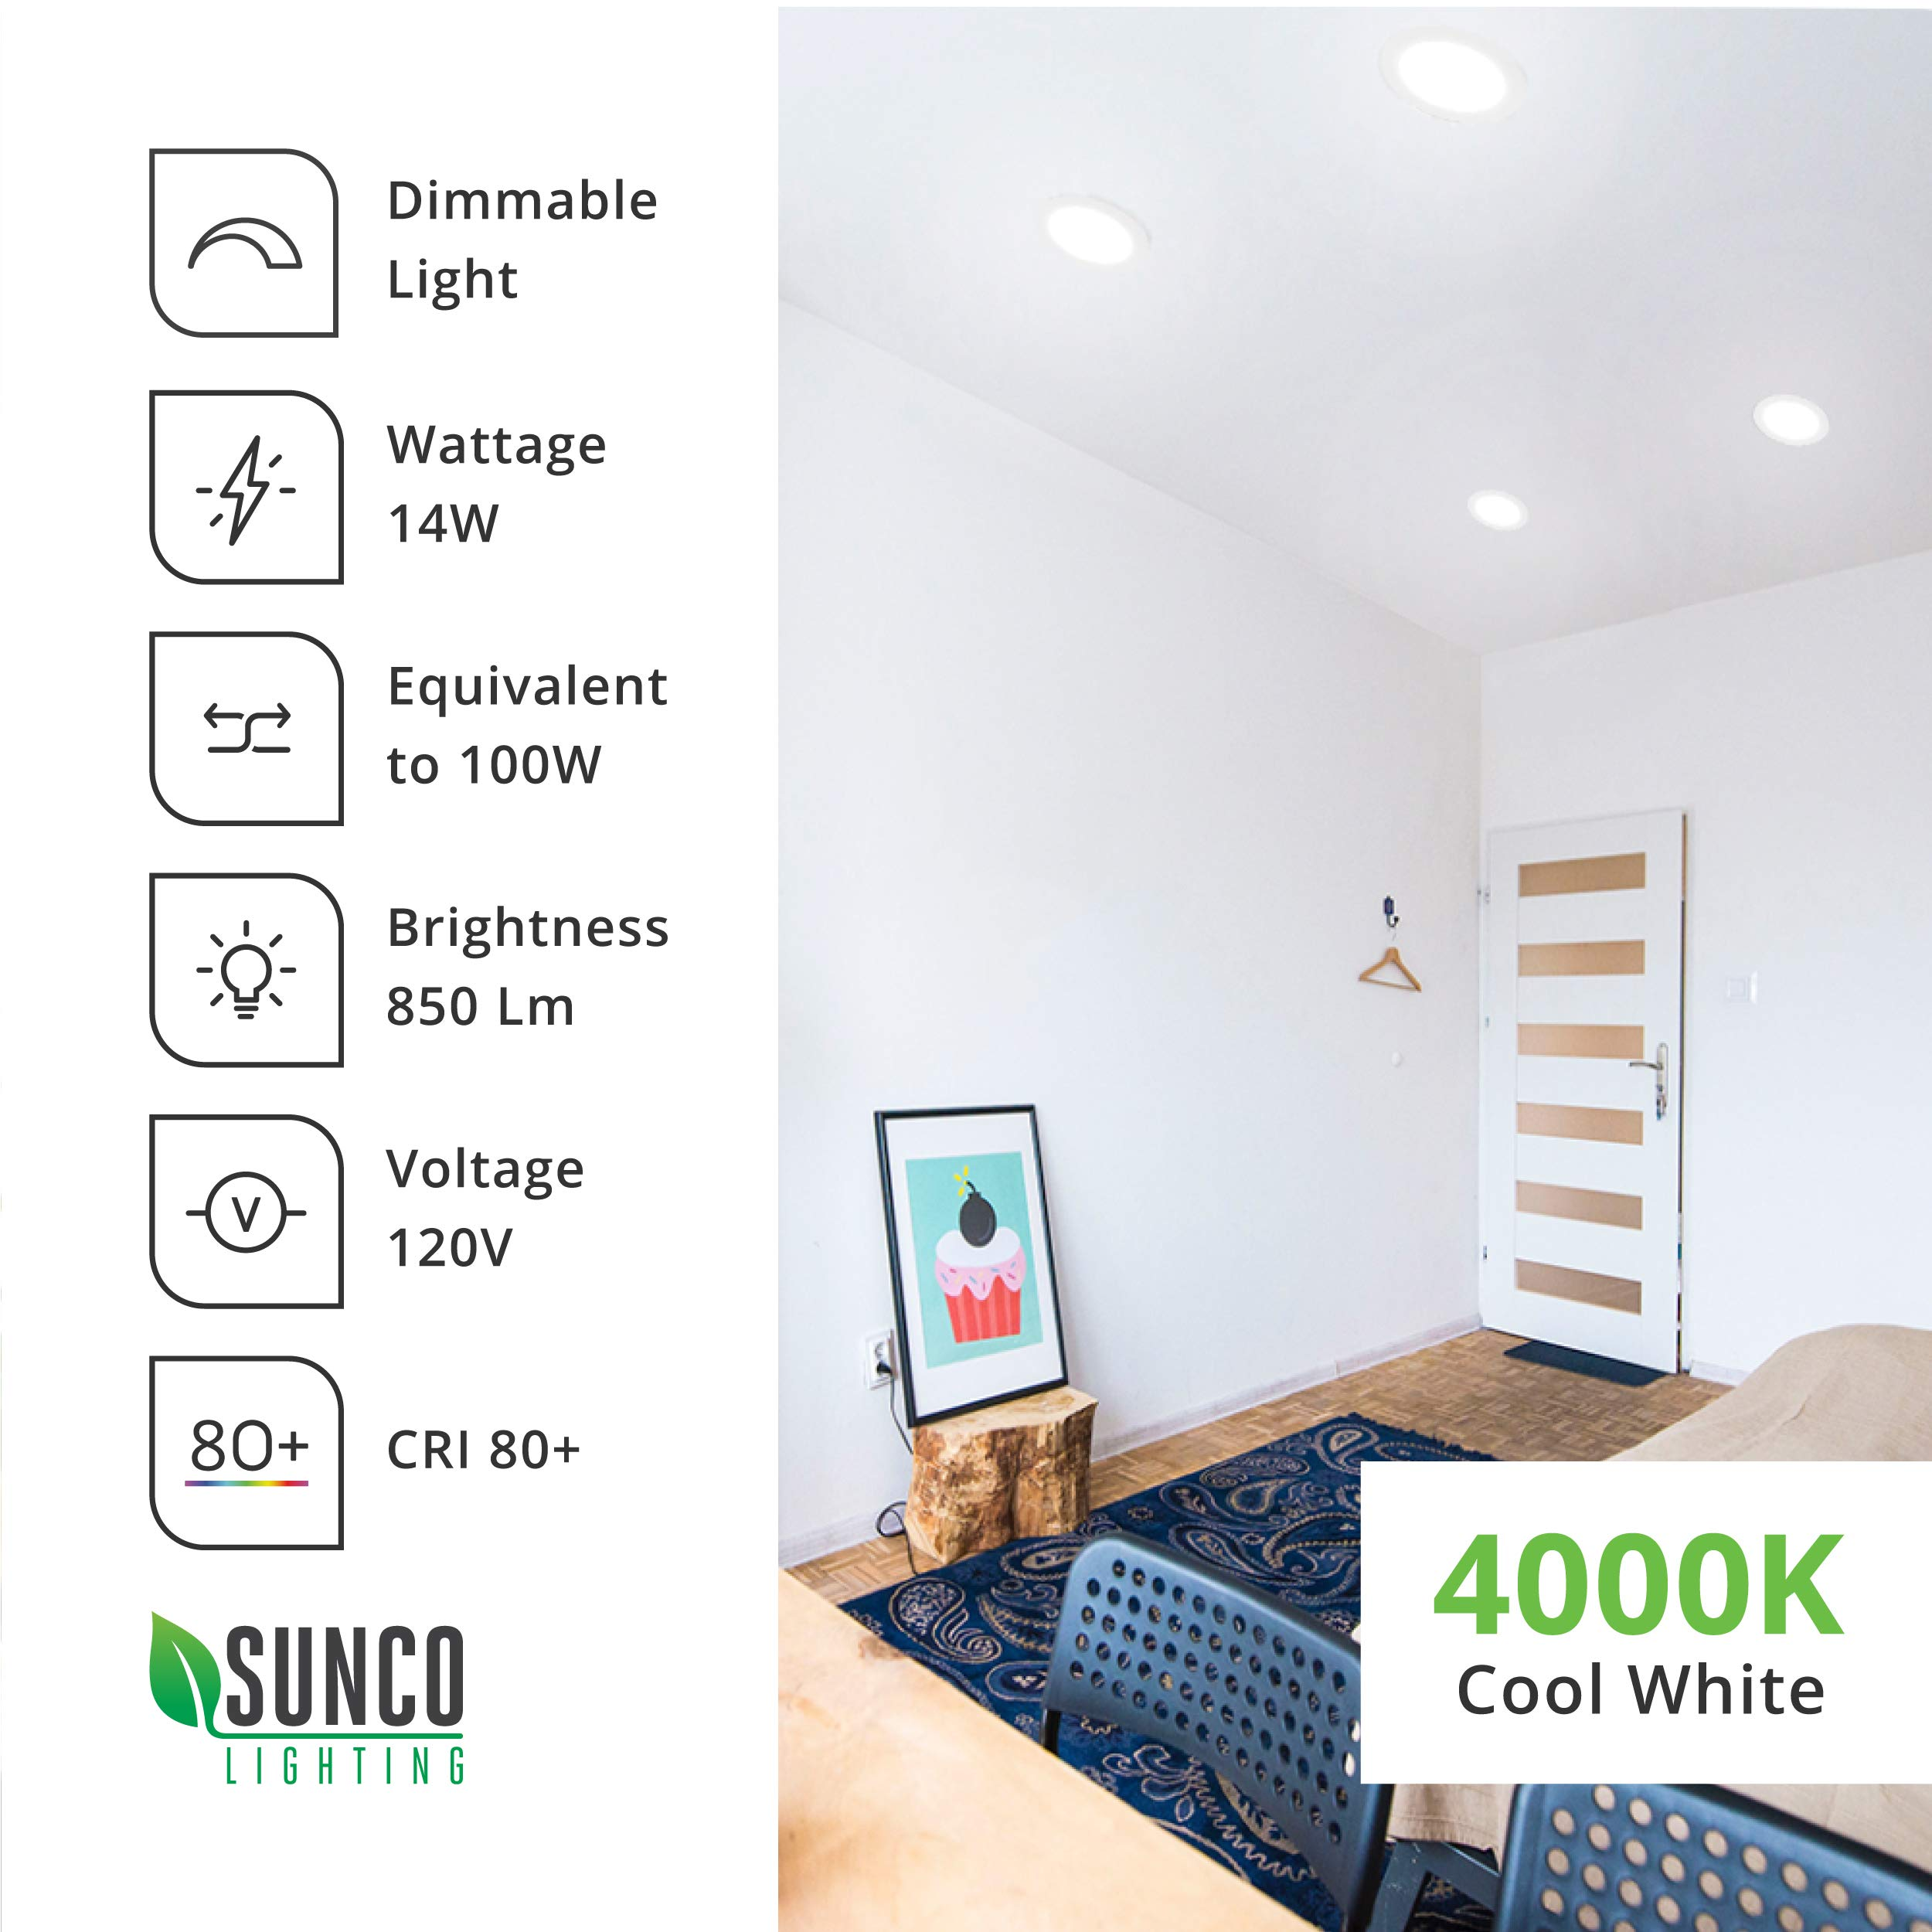 Sunco Lighting 12 Pack 6 Inch Slim LED Downlight with Junction Box, 14W=100W, 850 LM, Dimmable, 4000K Cool White, Recessed Jbox Fixture, Simple Retrofit Installation - ETL & Energy Star by Sunco Lighting (Image #9)